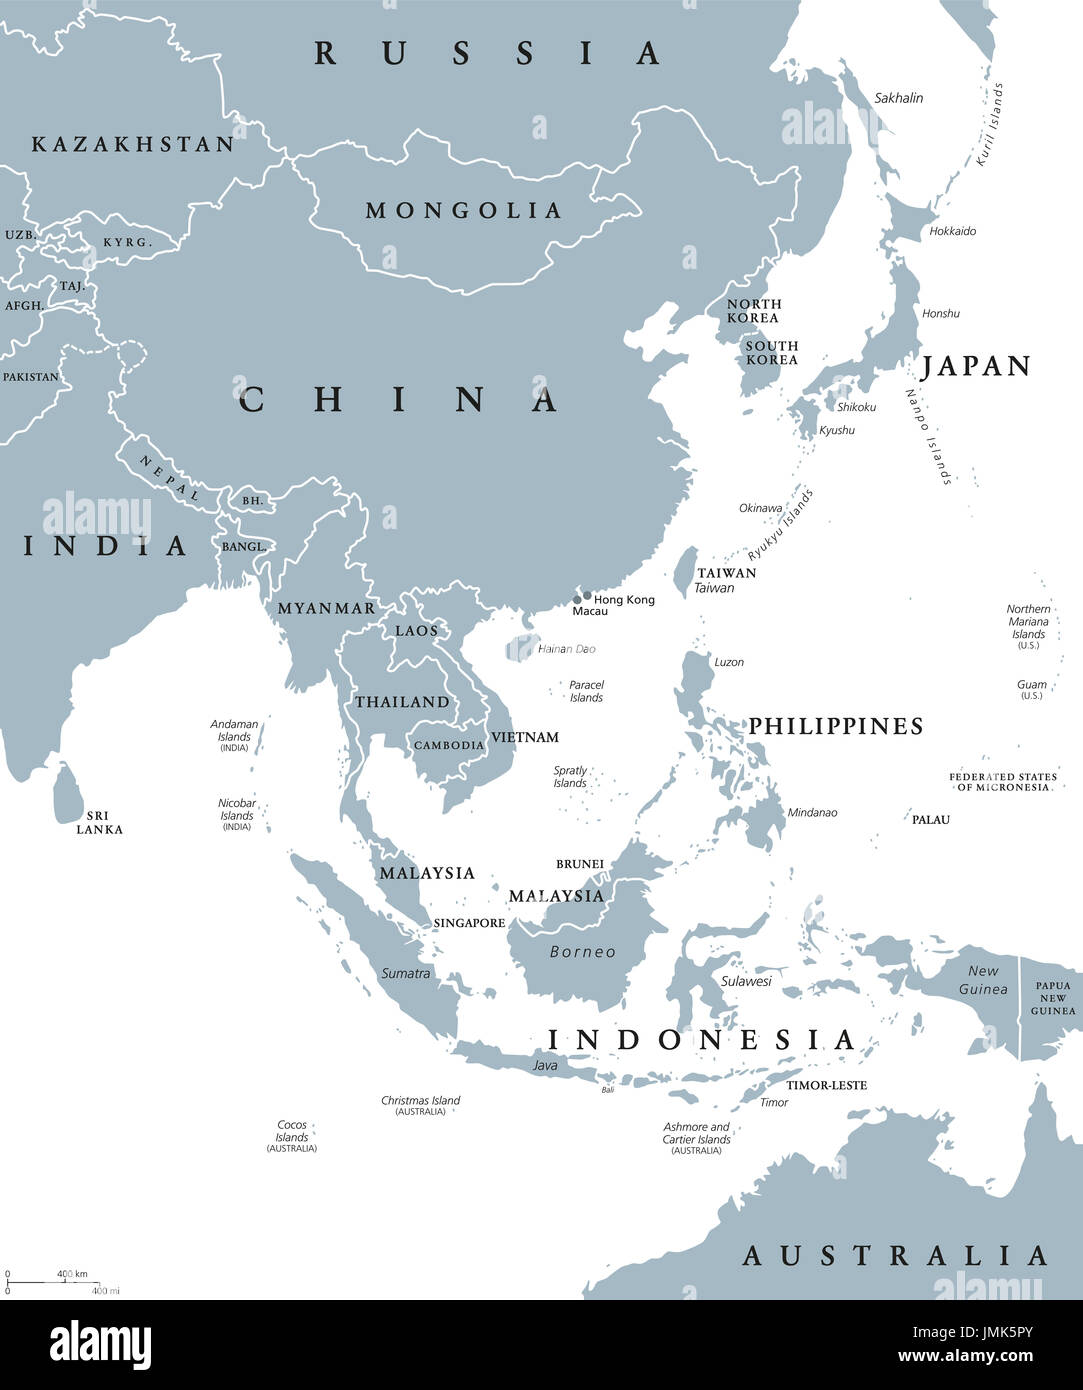 Countries Bordering China Map.East Asia Political Map With Countries And Borders Eastern